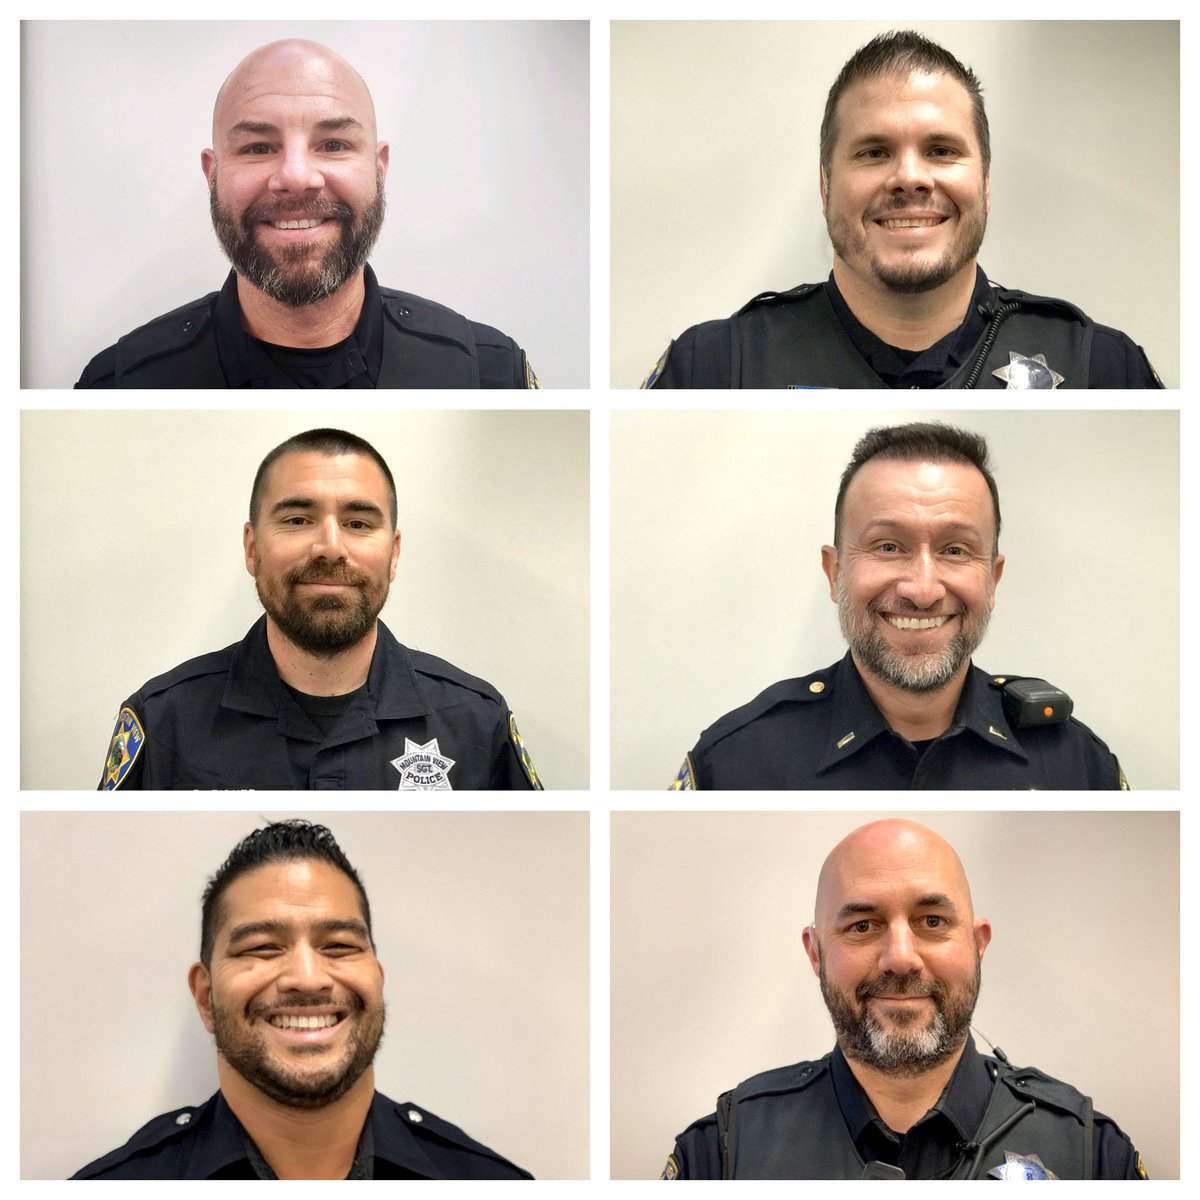 And what a fantastic Novembeard it was.   Thanks to all who cheered us on as we grew for a good cause to raise awareness for men's cancers.  Clean faces shall return. But these beards will live on forever in our hearts and on social media  #SundayFunday <br>http://pic.twitter.com/bUfuJgokdA